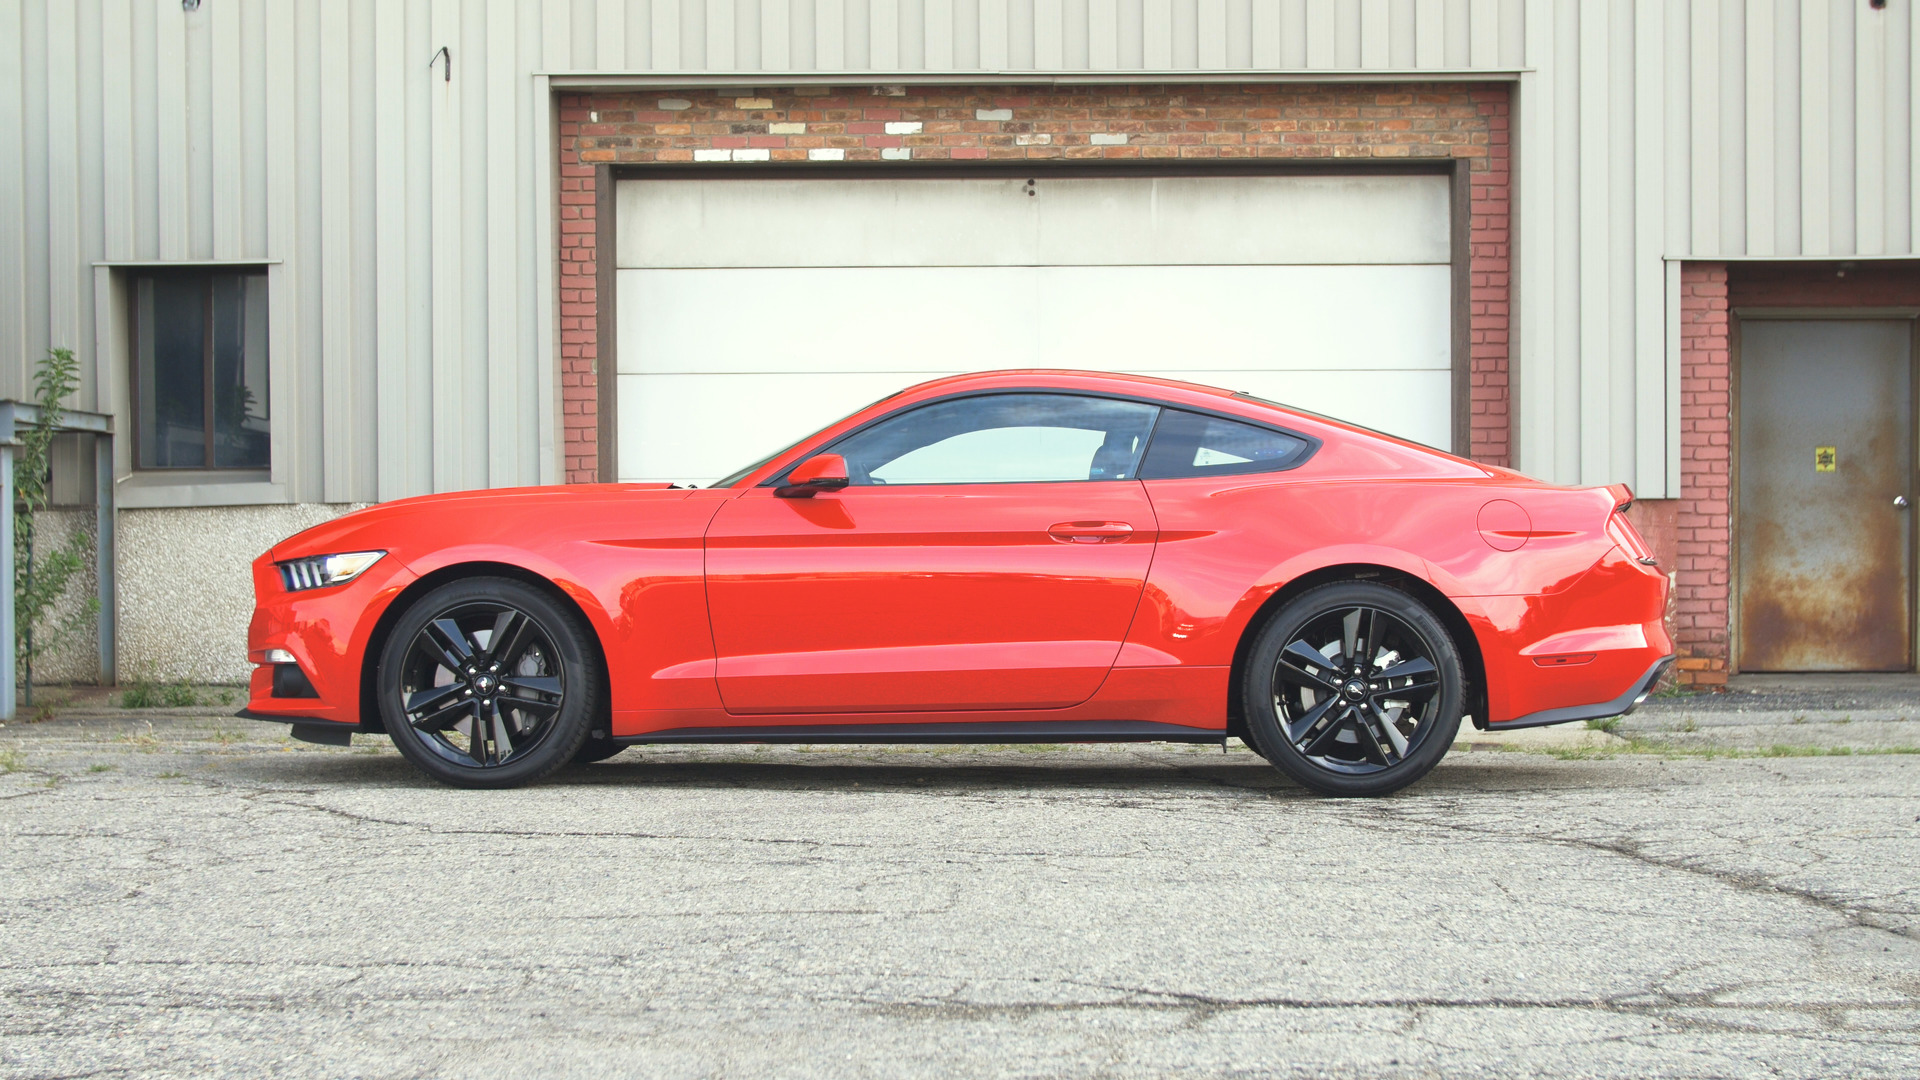 Ford pauses Mustang production as sales slow